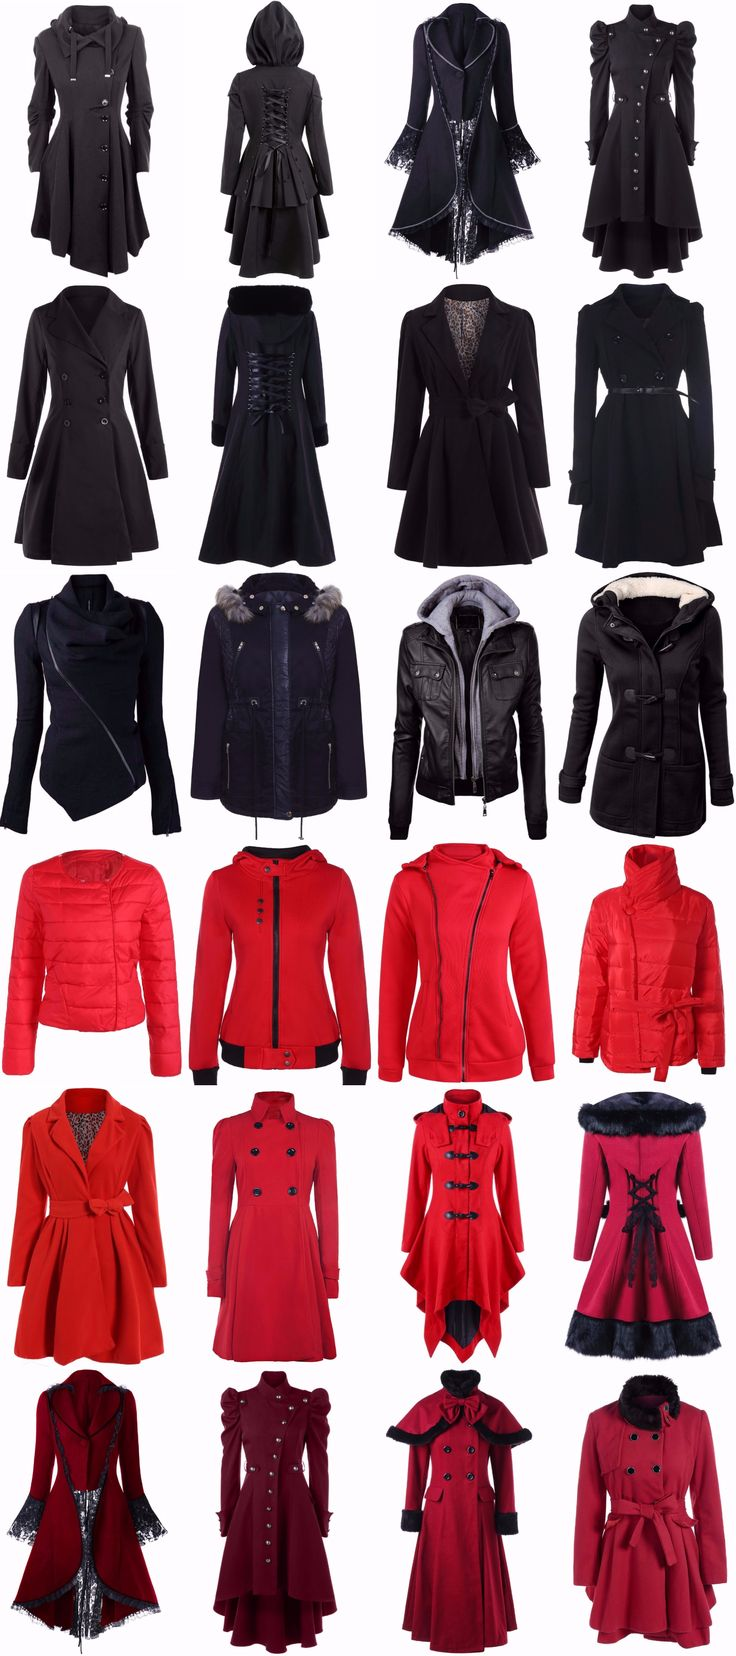 #500+ #Jackets & #Coats #ForWomen Start From $3.99 | Up To 89% OFF | Black Friday | Cyber Monday | Sammydress.com